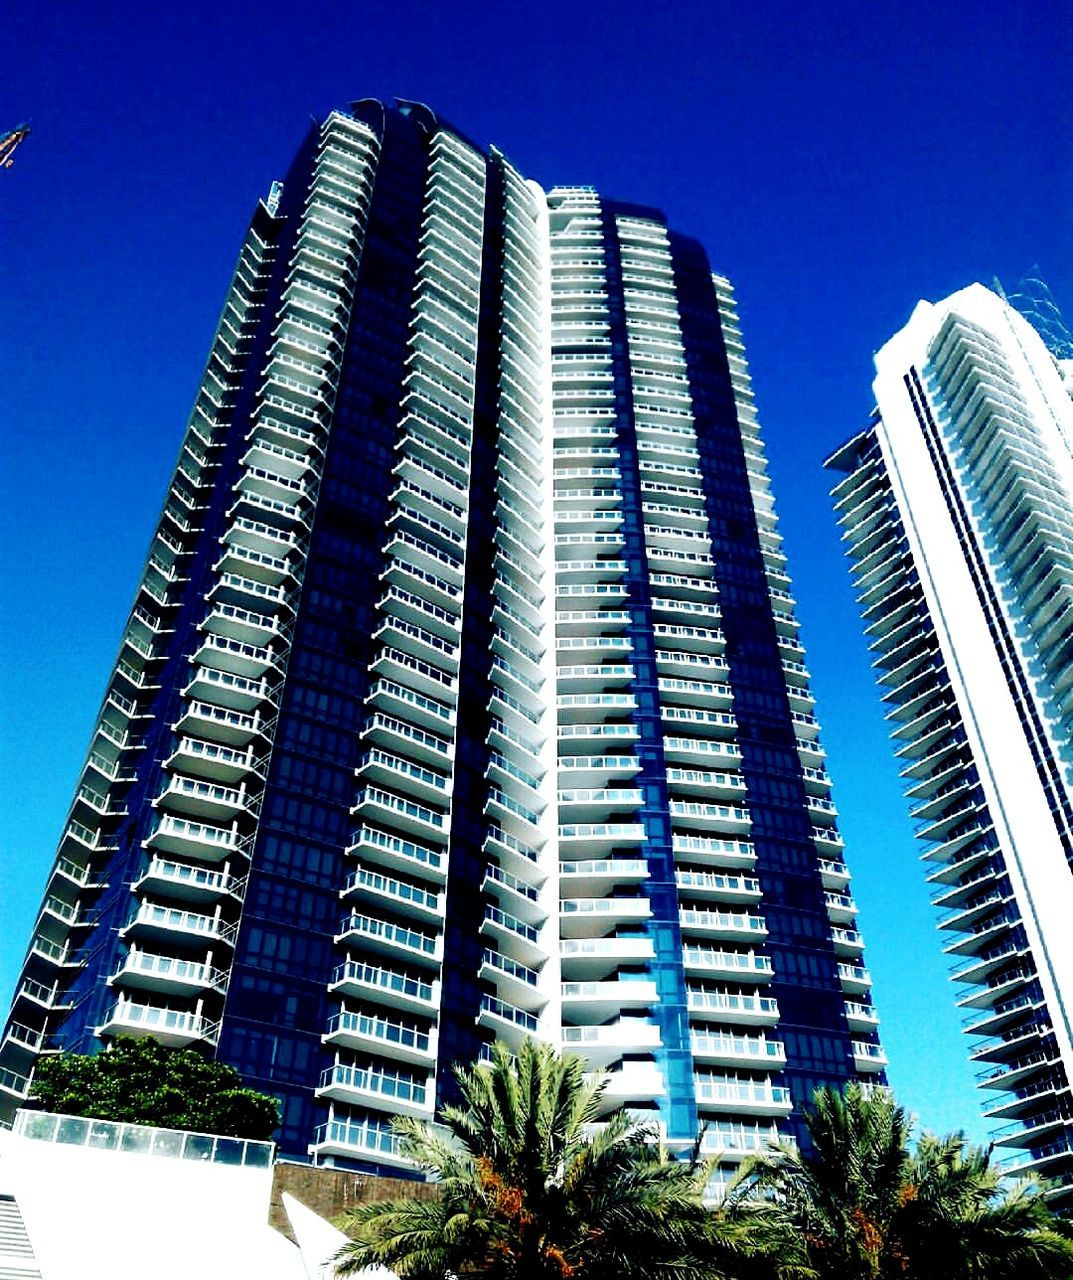 architecture, skyscraper, built structure, modern, building exterior, low angle view, blue, city, clear sky, sky, outdoors, no people, growth, tree, day, apartment